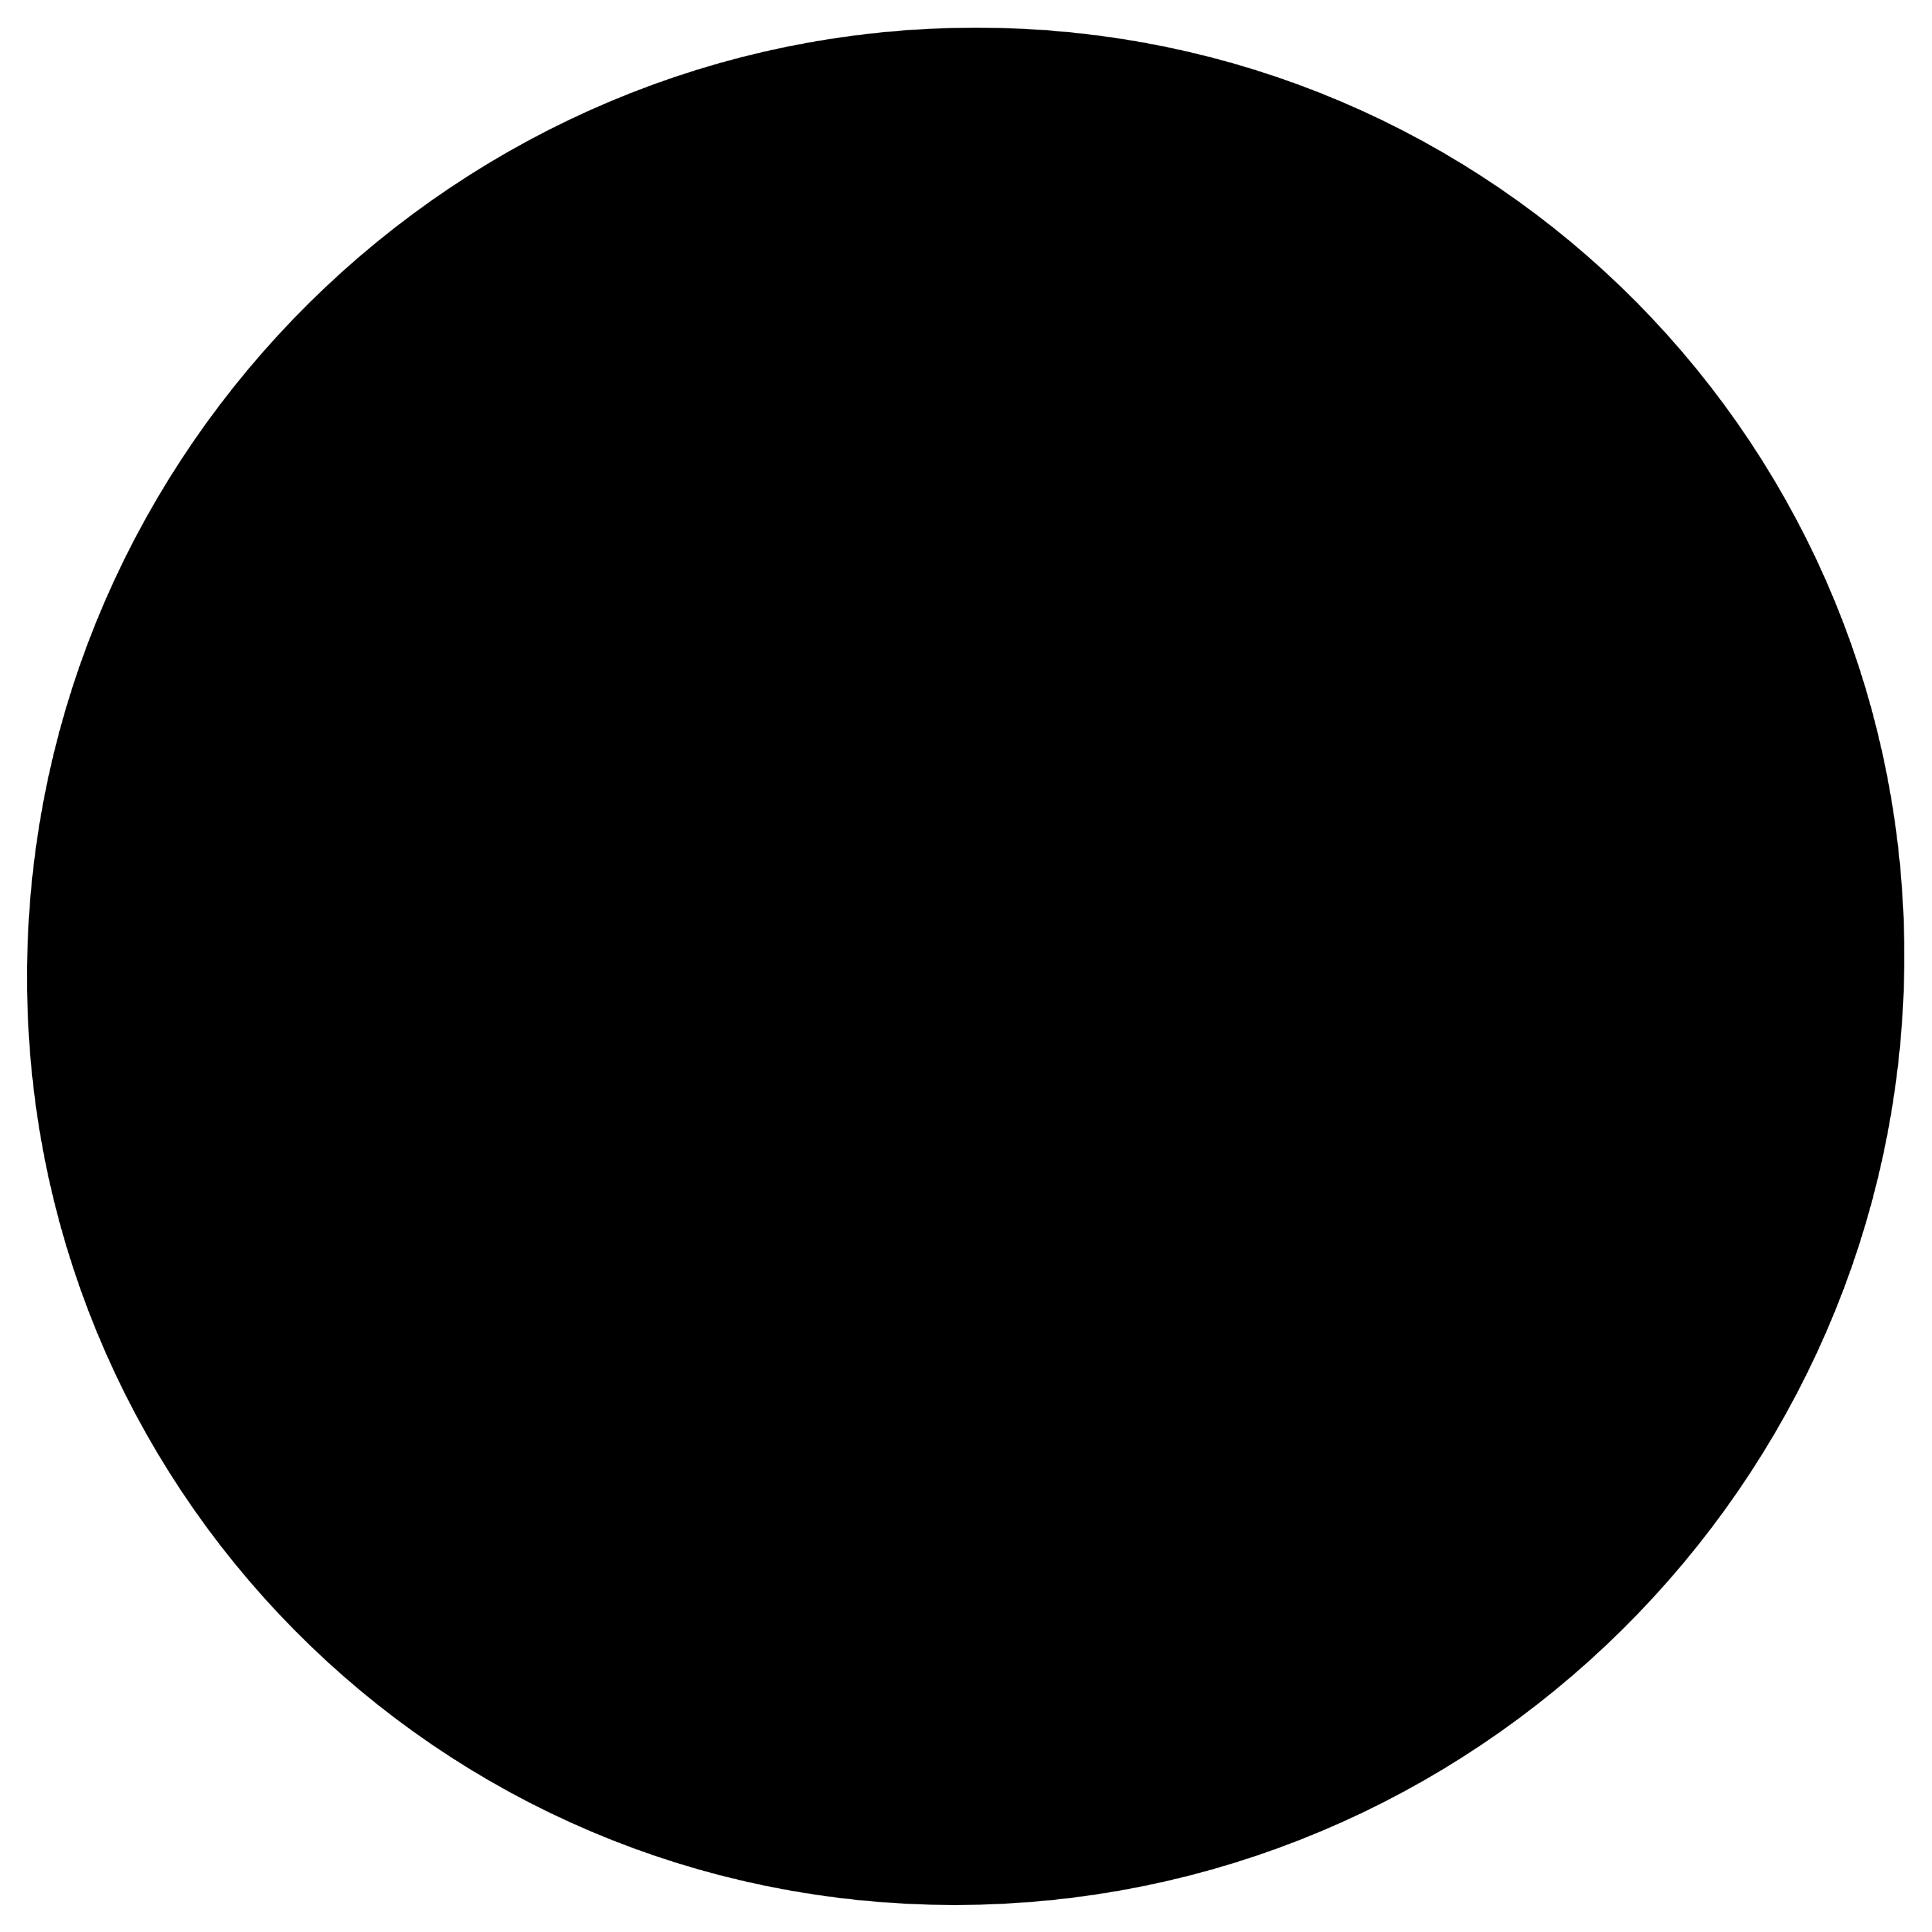 Circle black clipart image black and white stock Black Circle Png (+) - Free Download   fourjay.org image black and white stock